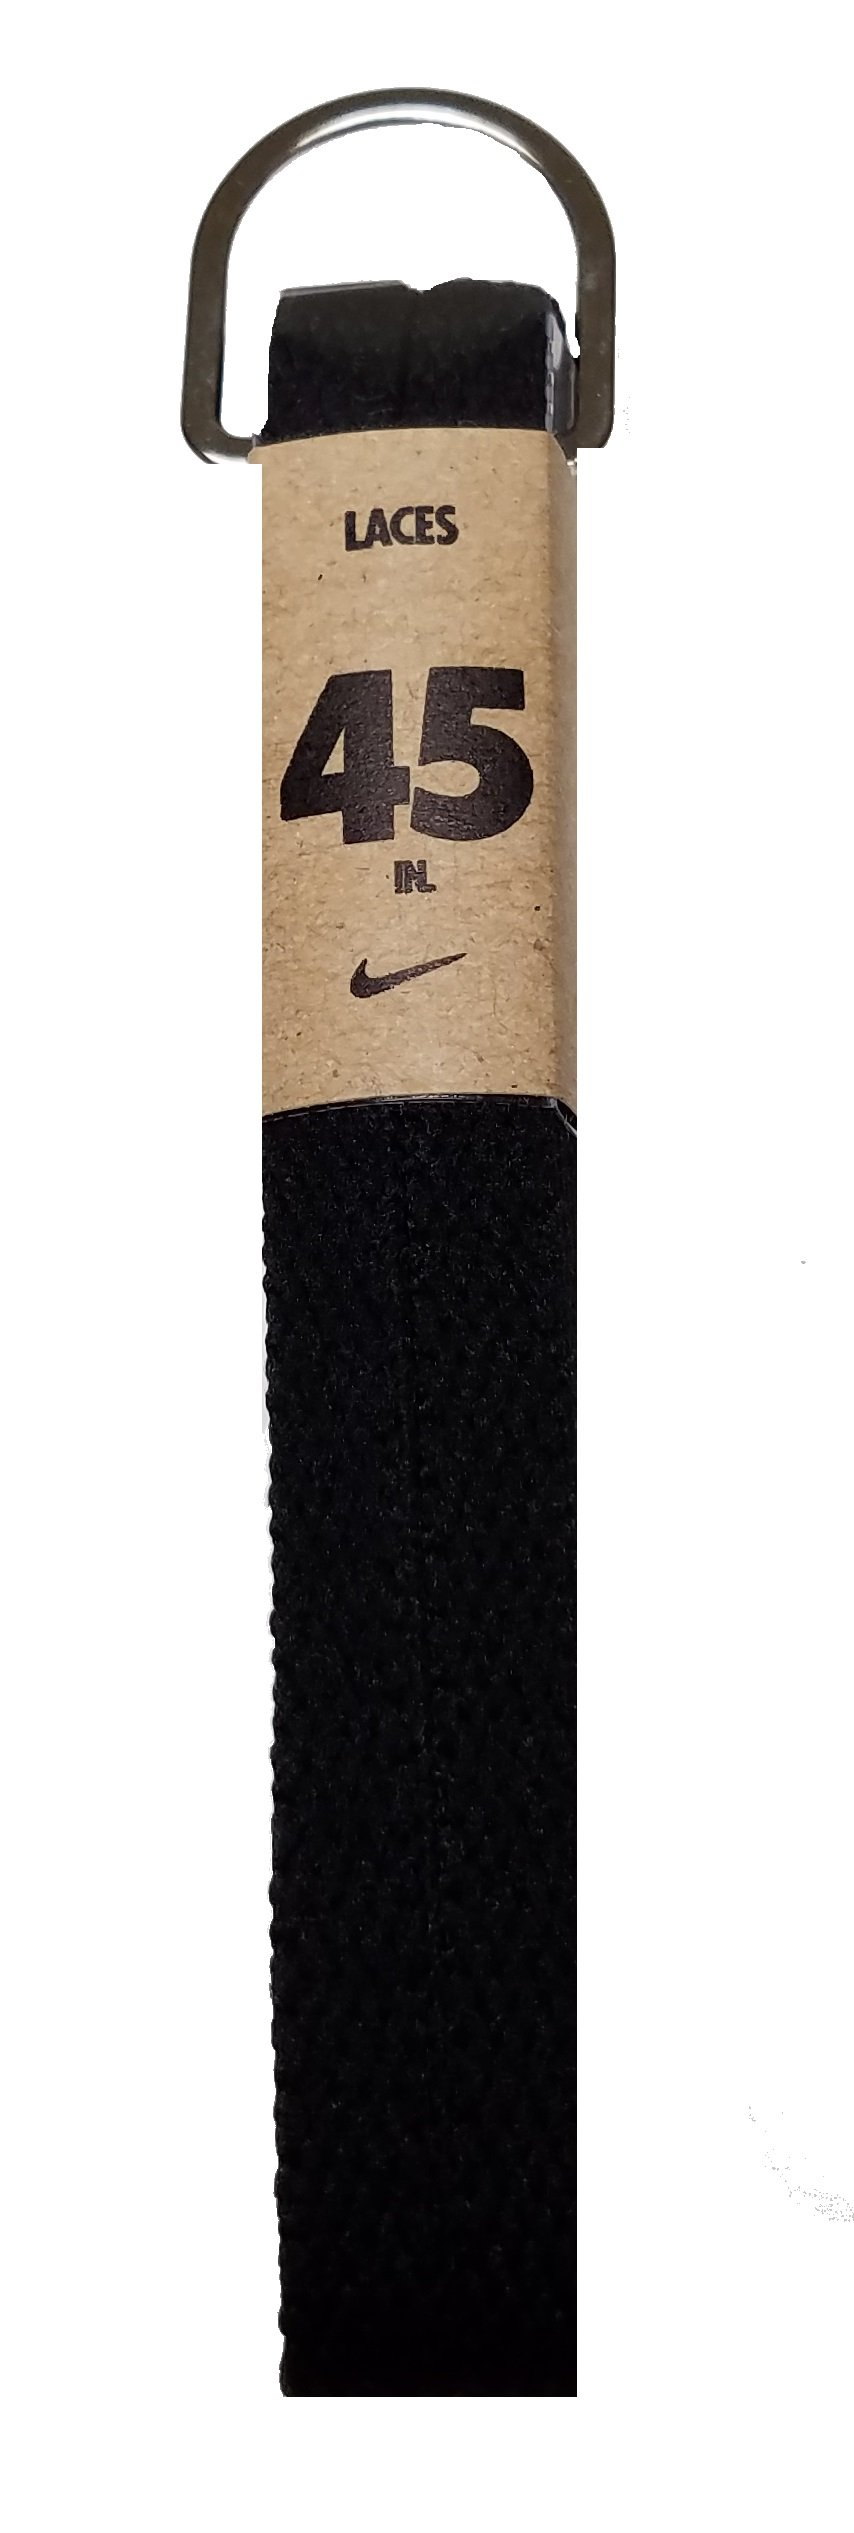 Nike Unisex Replacement Shoelaces Flat String Cords Shoe Laces (Black, 45)